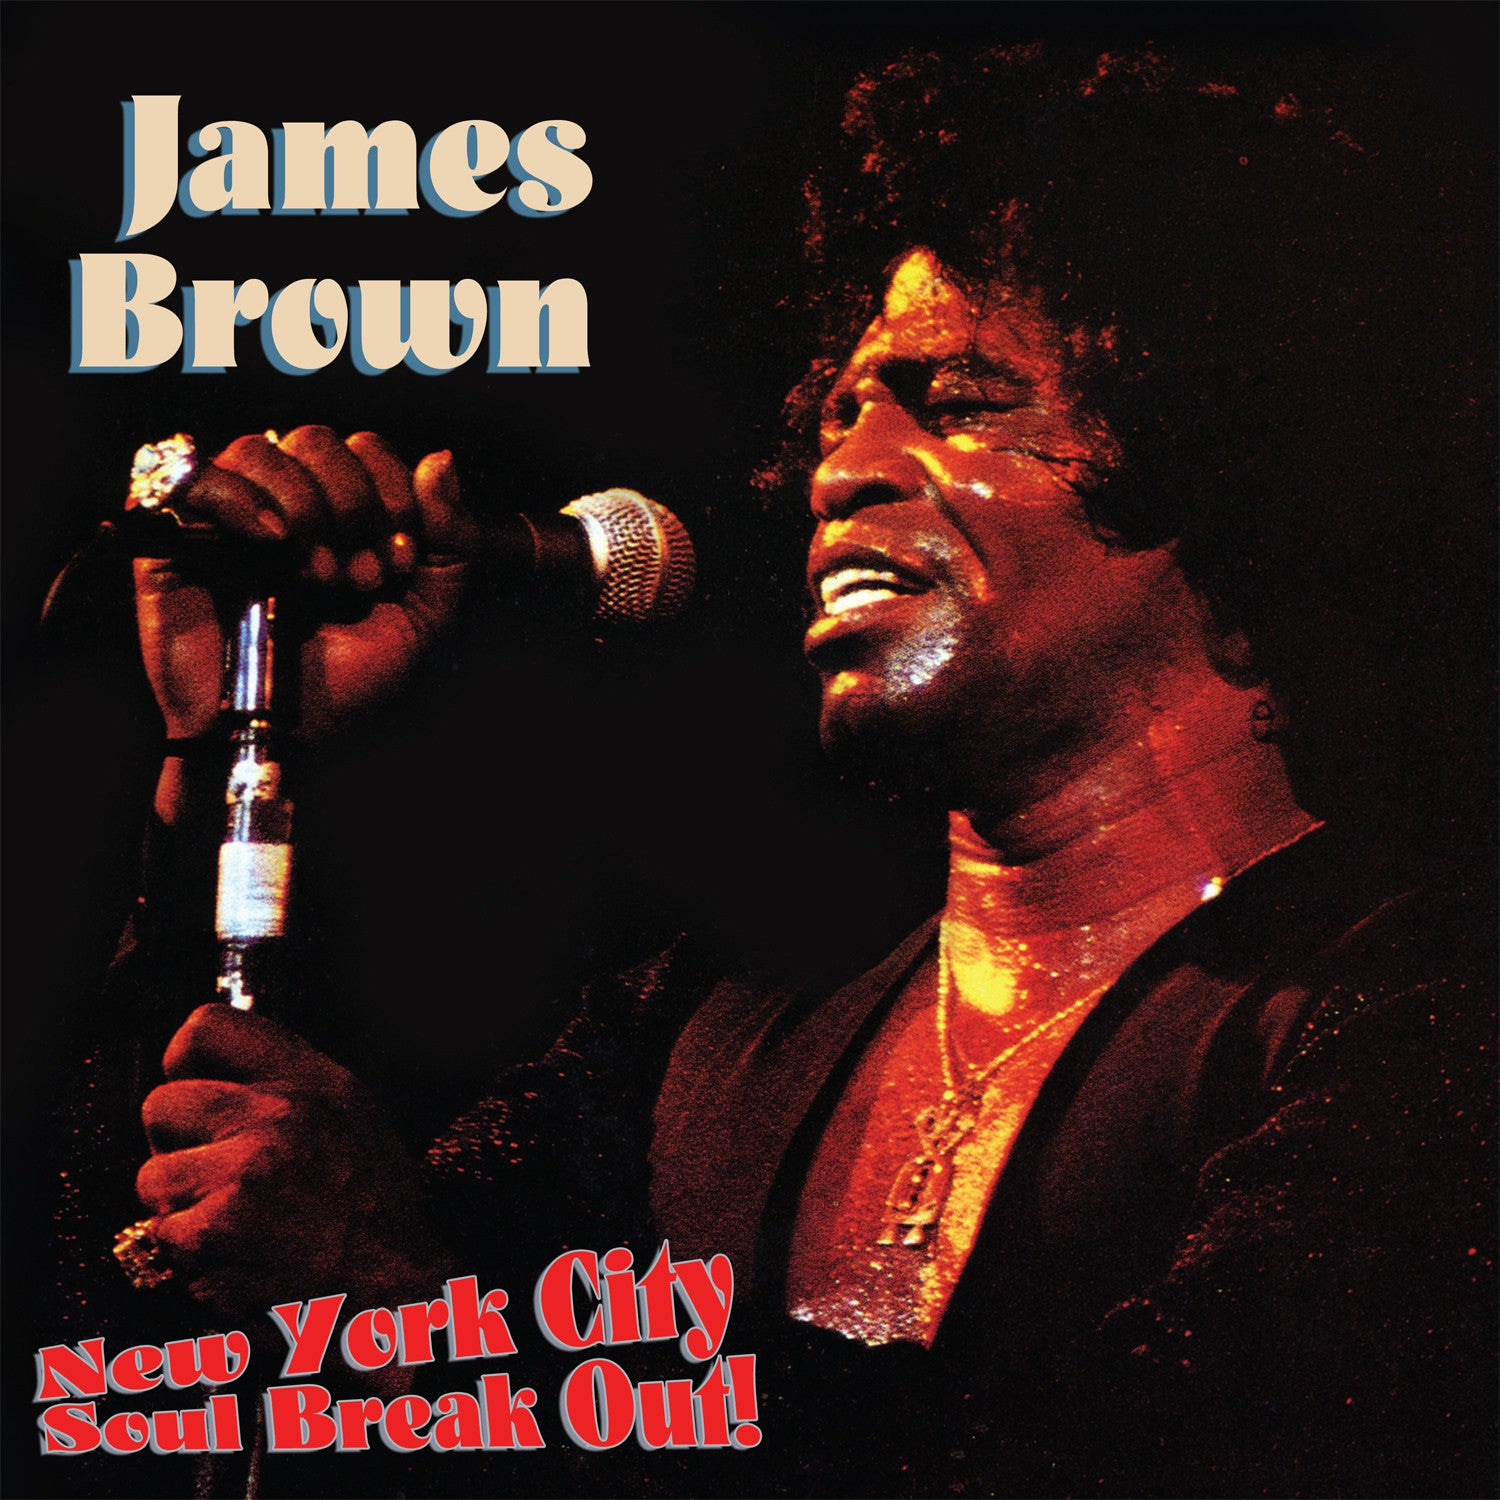 BROWN JAMES-NEW YORK CITY SOUL BREAK OUT LP *NEW*